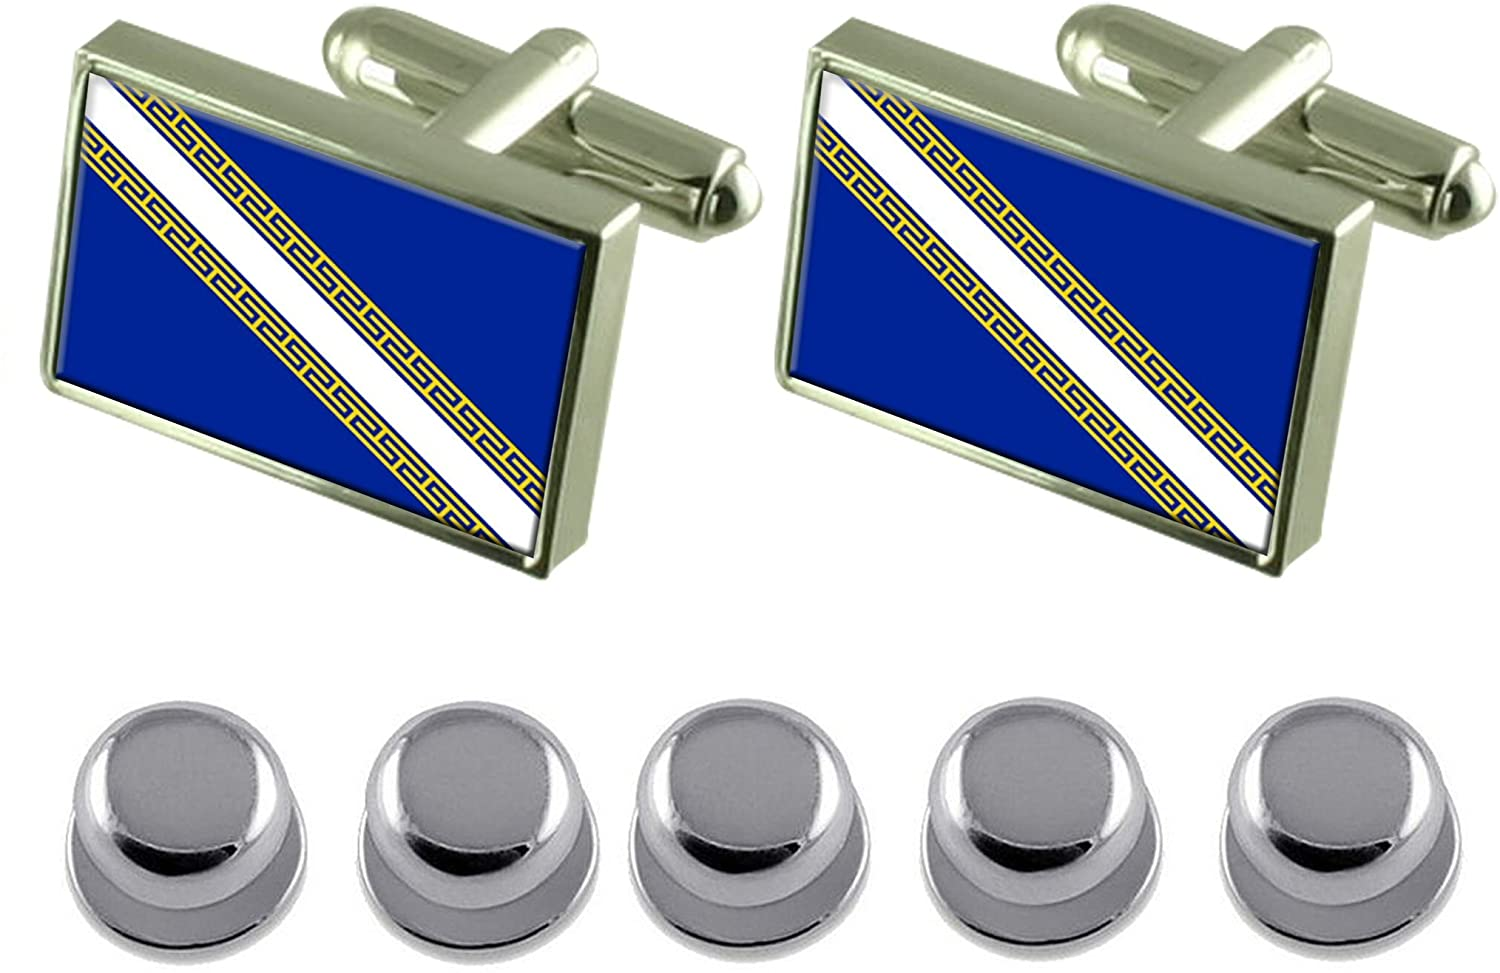 Select Gifts Shirt Dress Studs Champagne-Ardenne Province France Flag Cufflinks